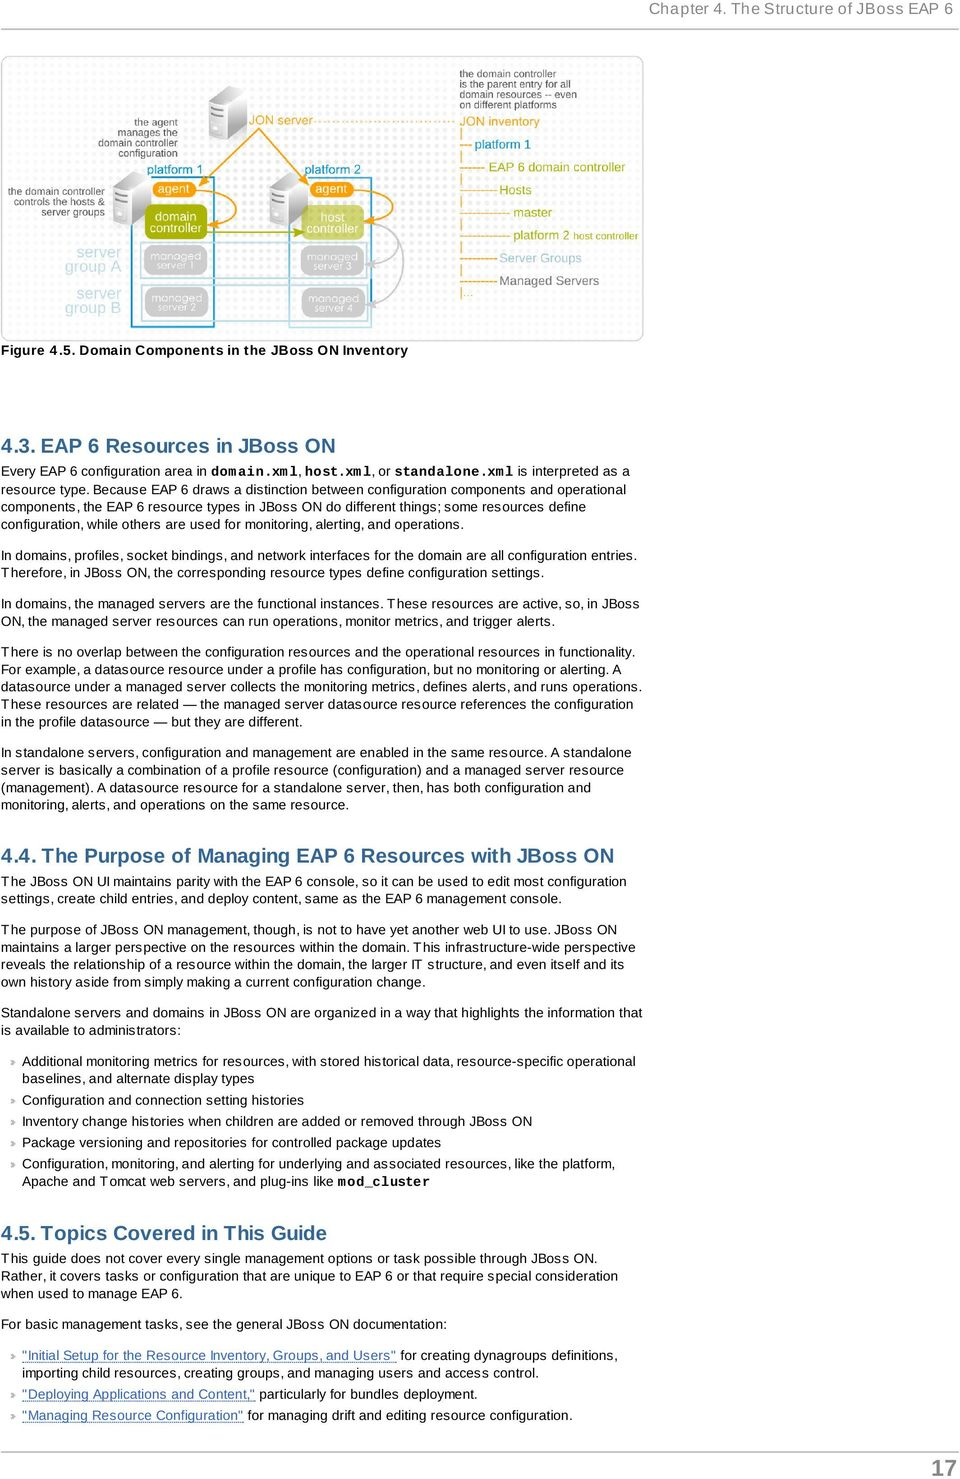 Because EAP 6 draws a distinction between configuration components and operational components, the EAP 6 resource types in JBoss ON do different things; some resources define configuration, while